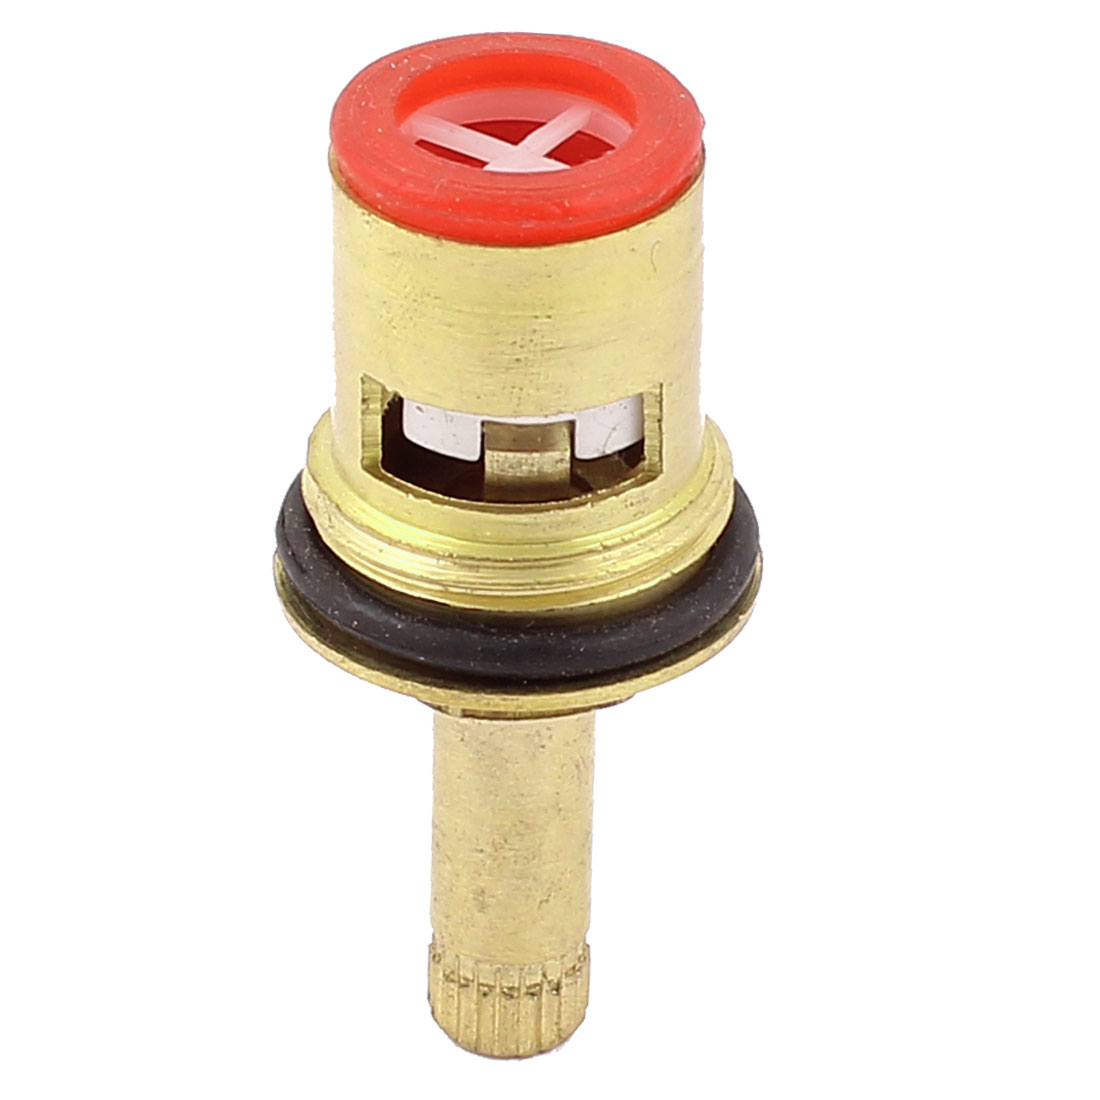 1/2 BSP Male Thread Rubber Washer Ceramic Disc Tap Valve Cartridge 49mm Height